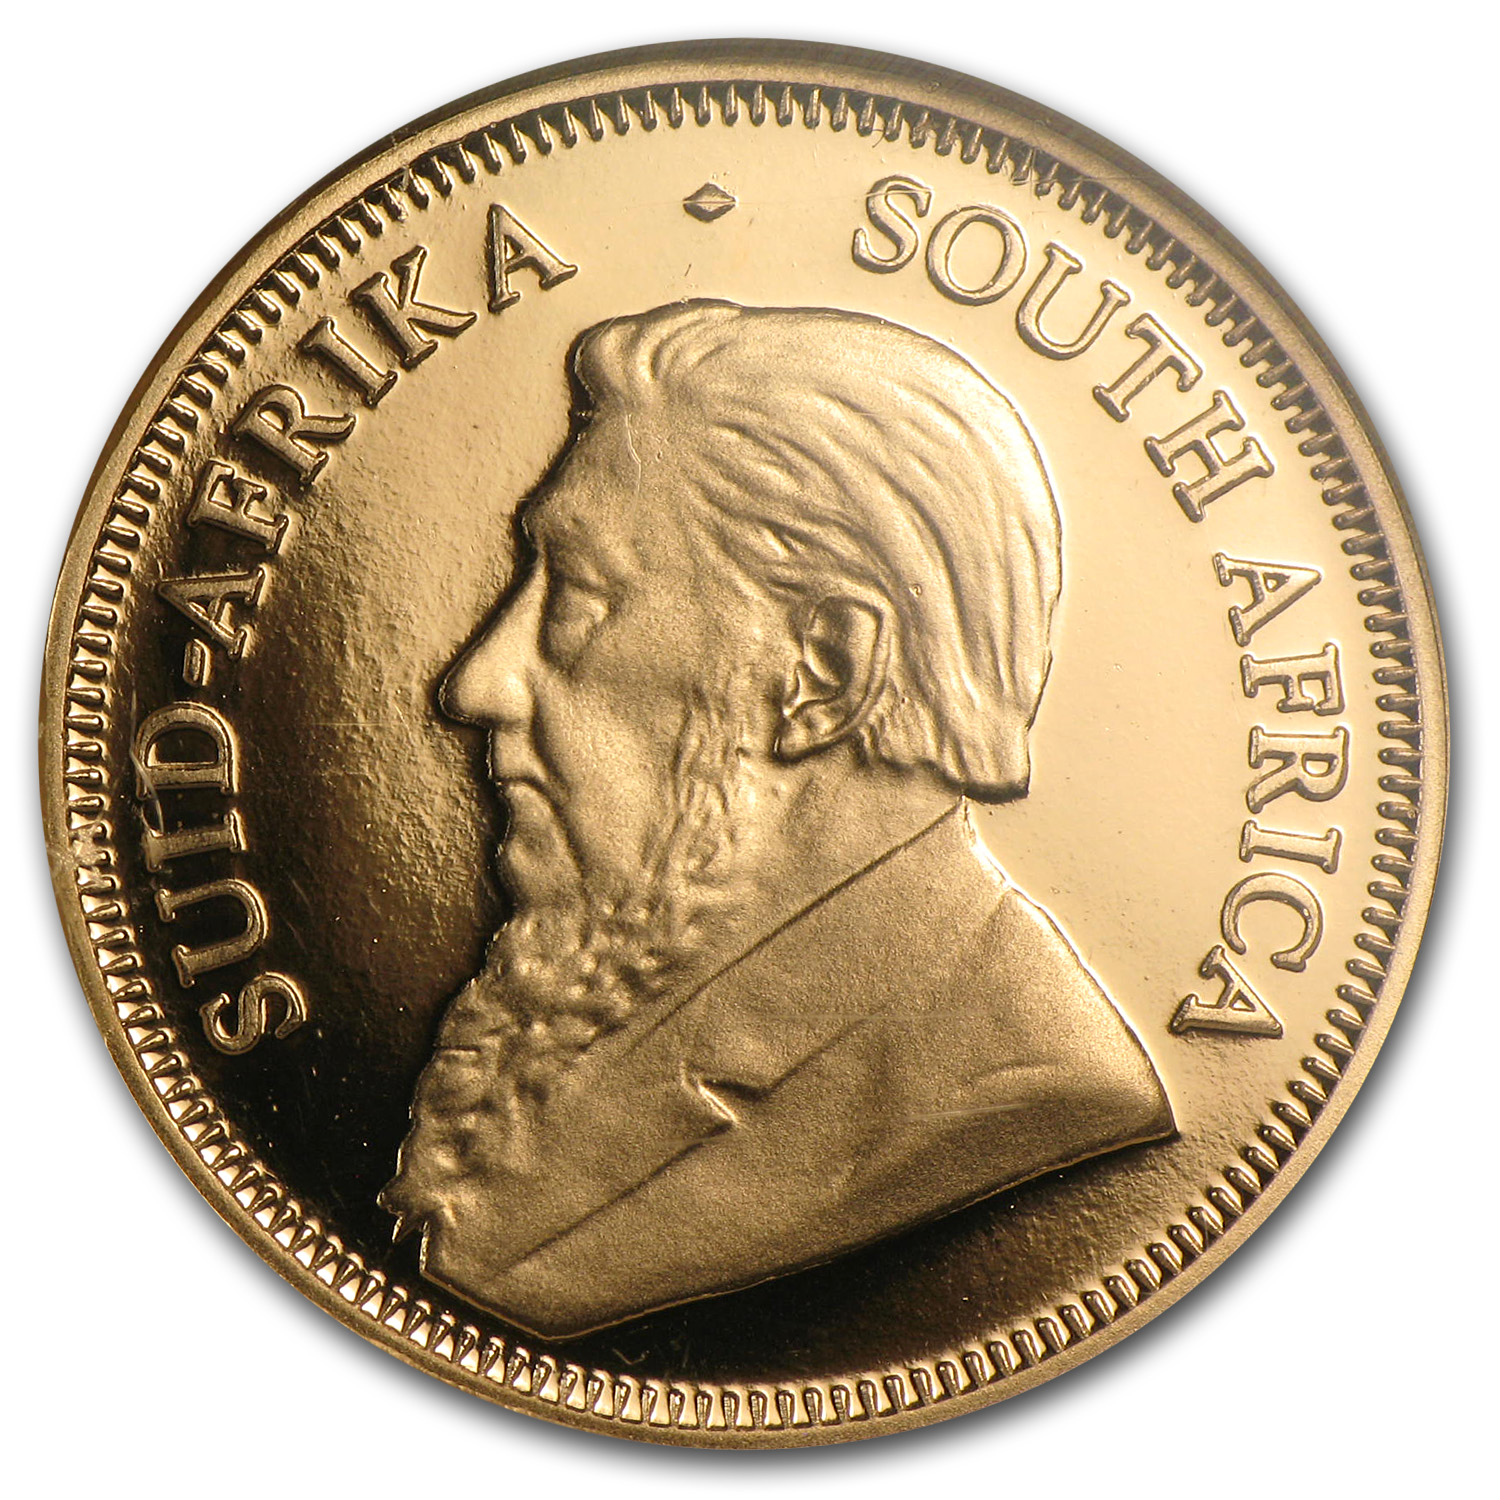 2007 South Africa 1/4 oz Gold Krugerrand PF-70 NGC